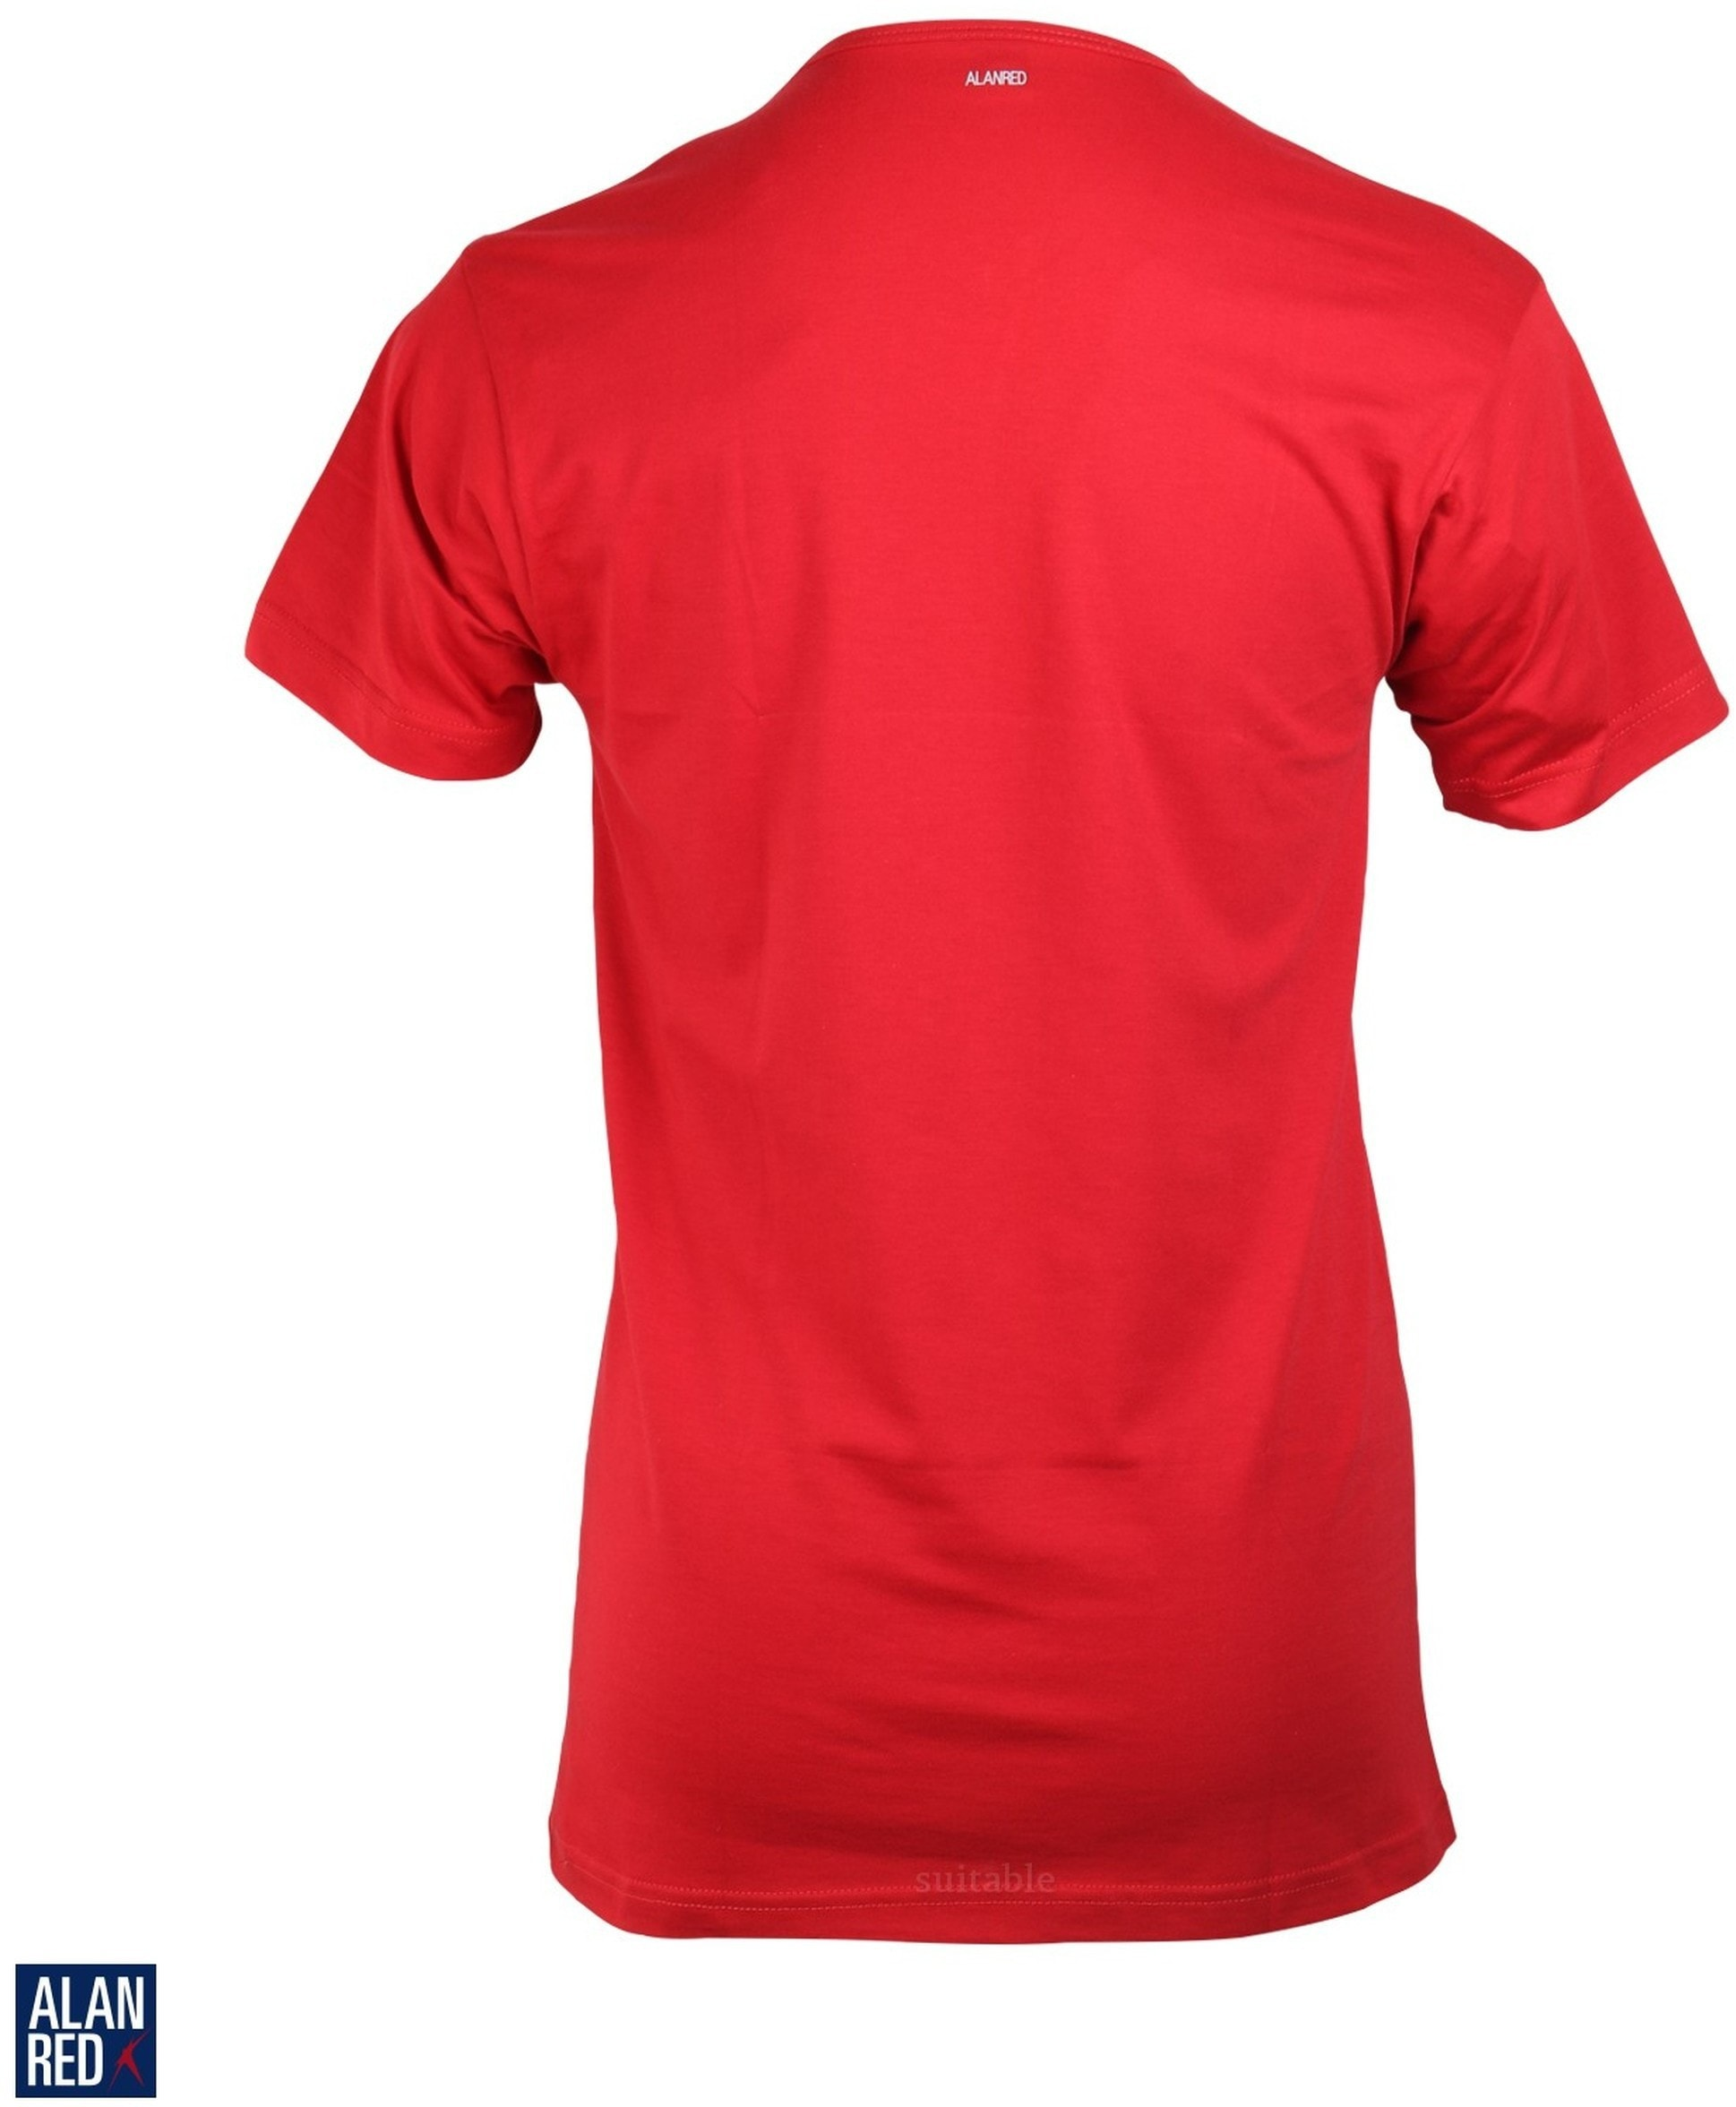 Alan Red Vermont T-shirt V-Neck Red 1-Pack